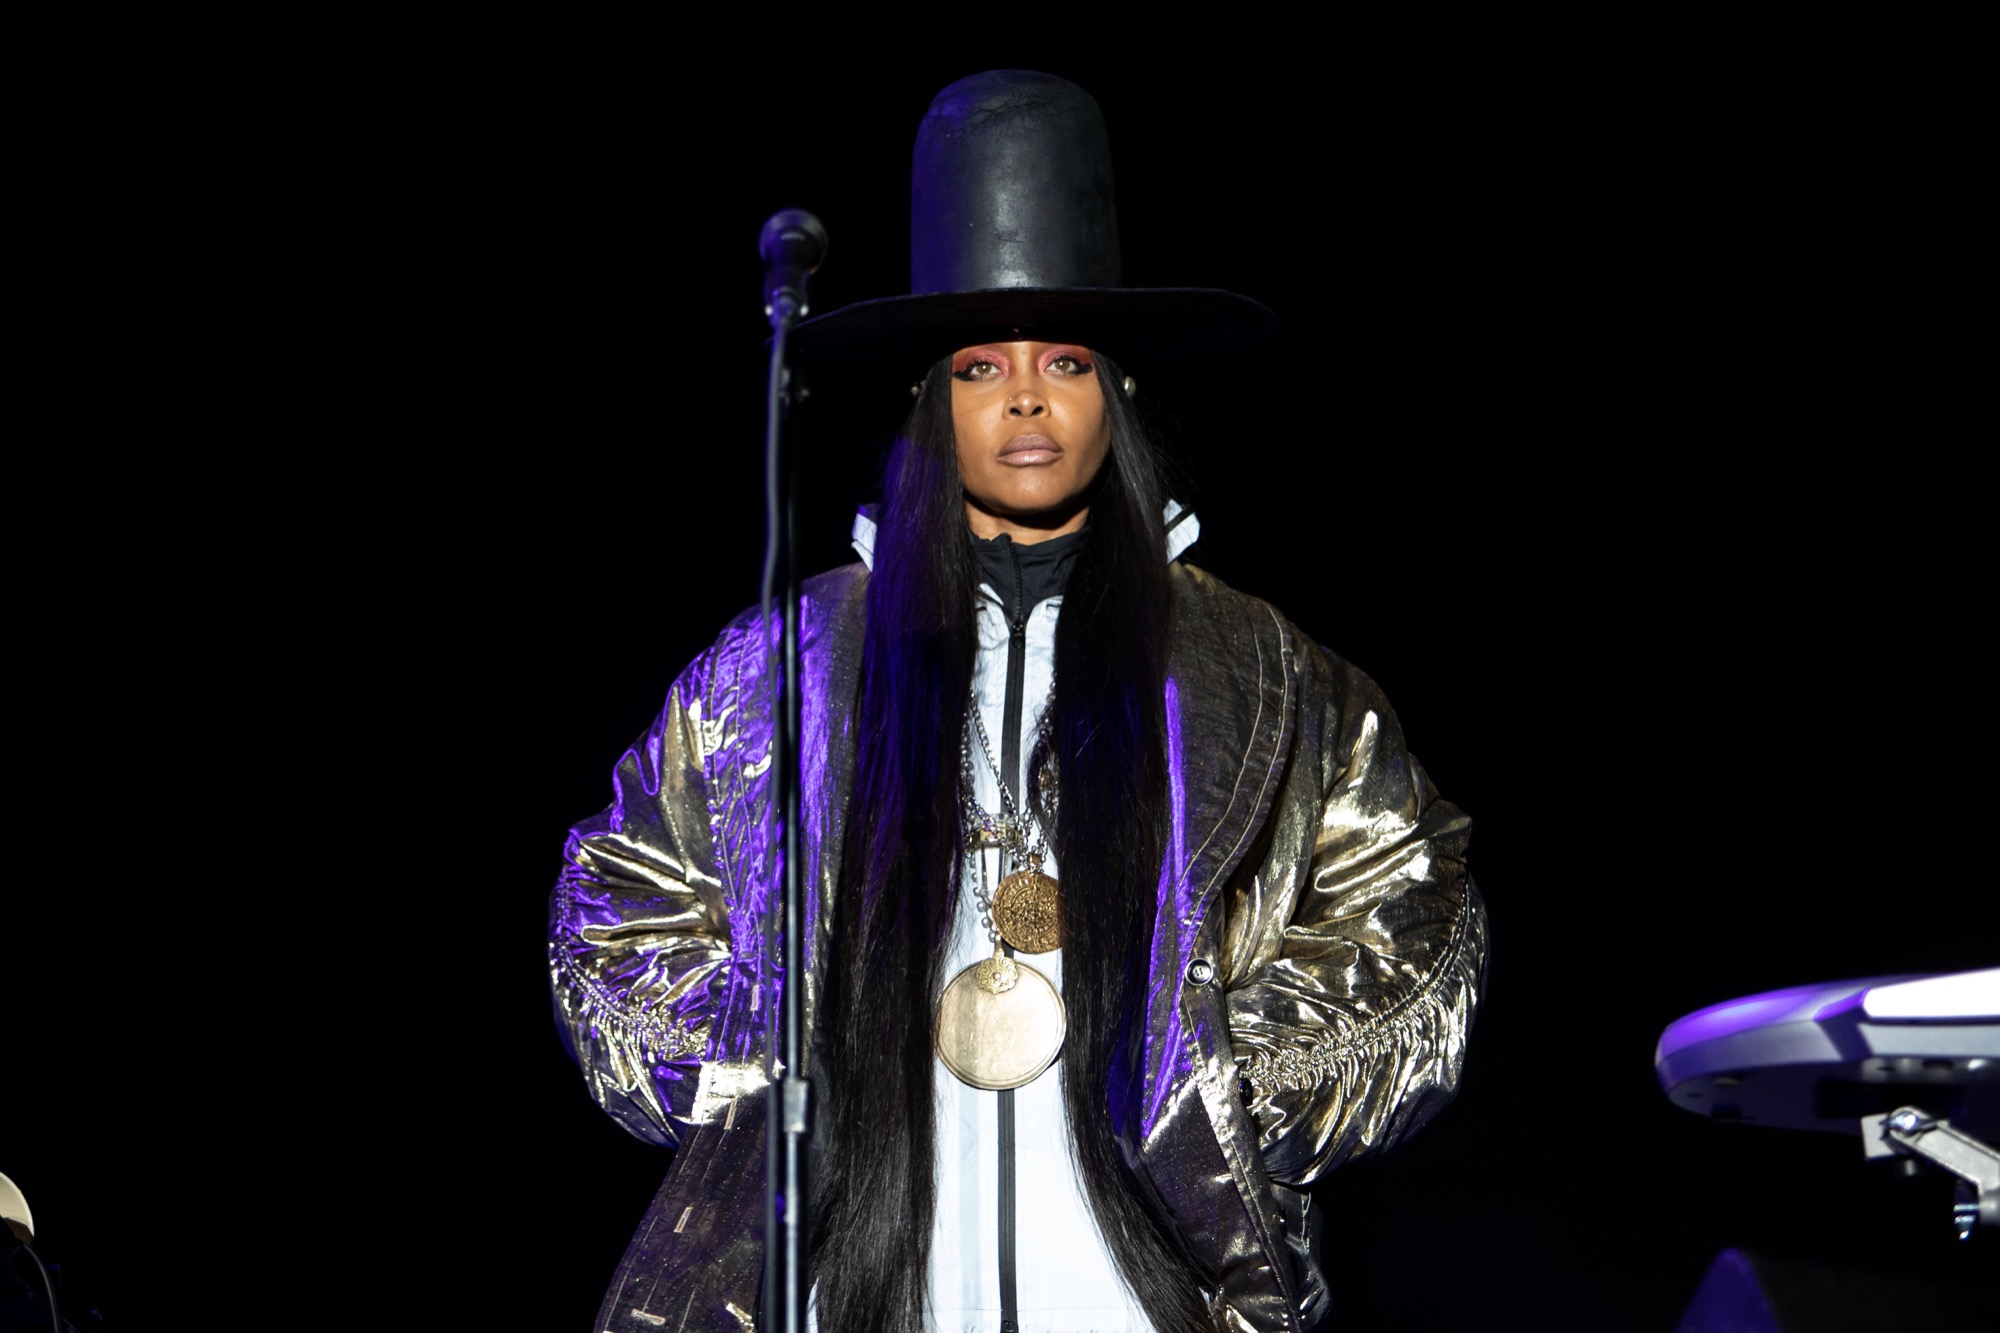 Erykah Badu performs at the Pitchfork Music Festival in Chicago on Sep. 12, 2021.